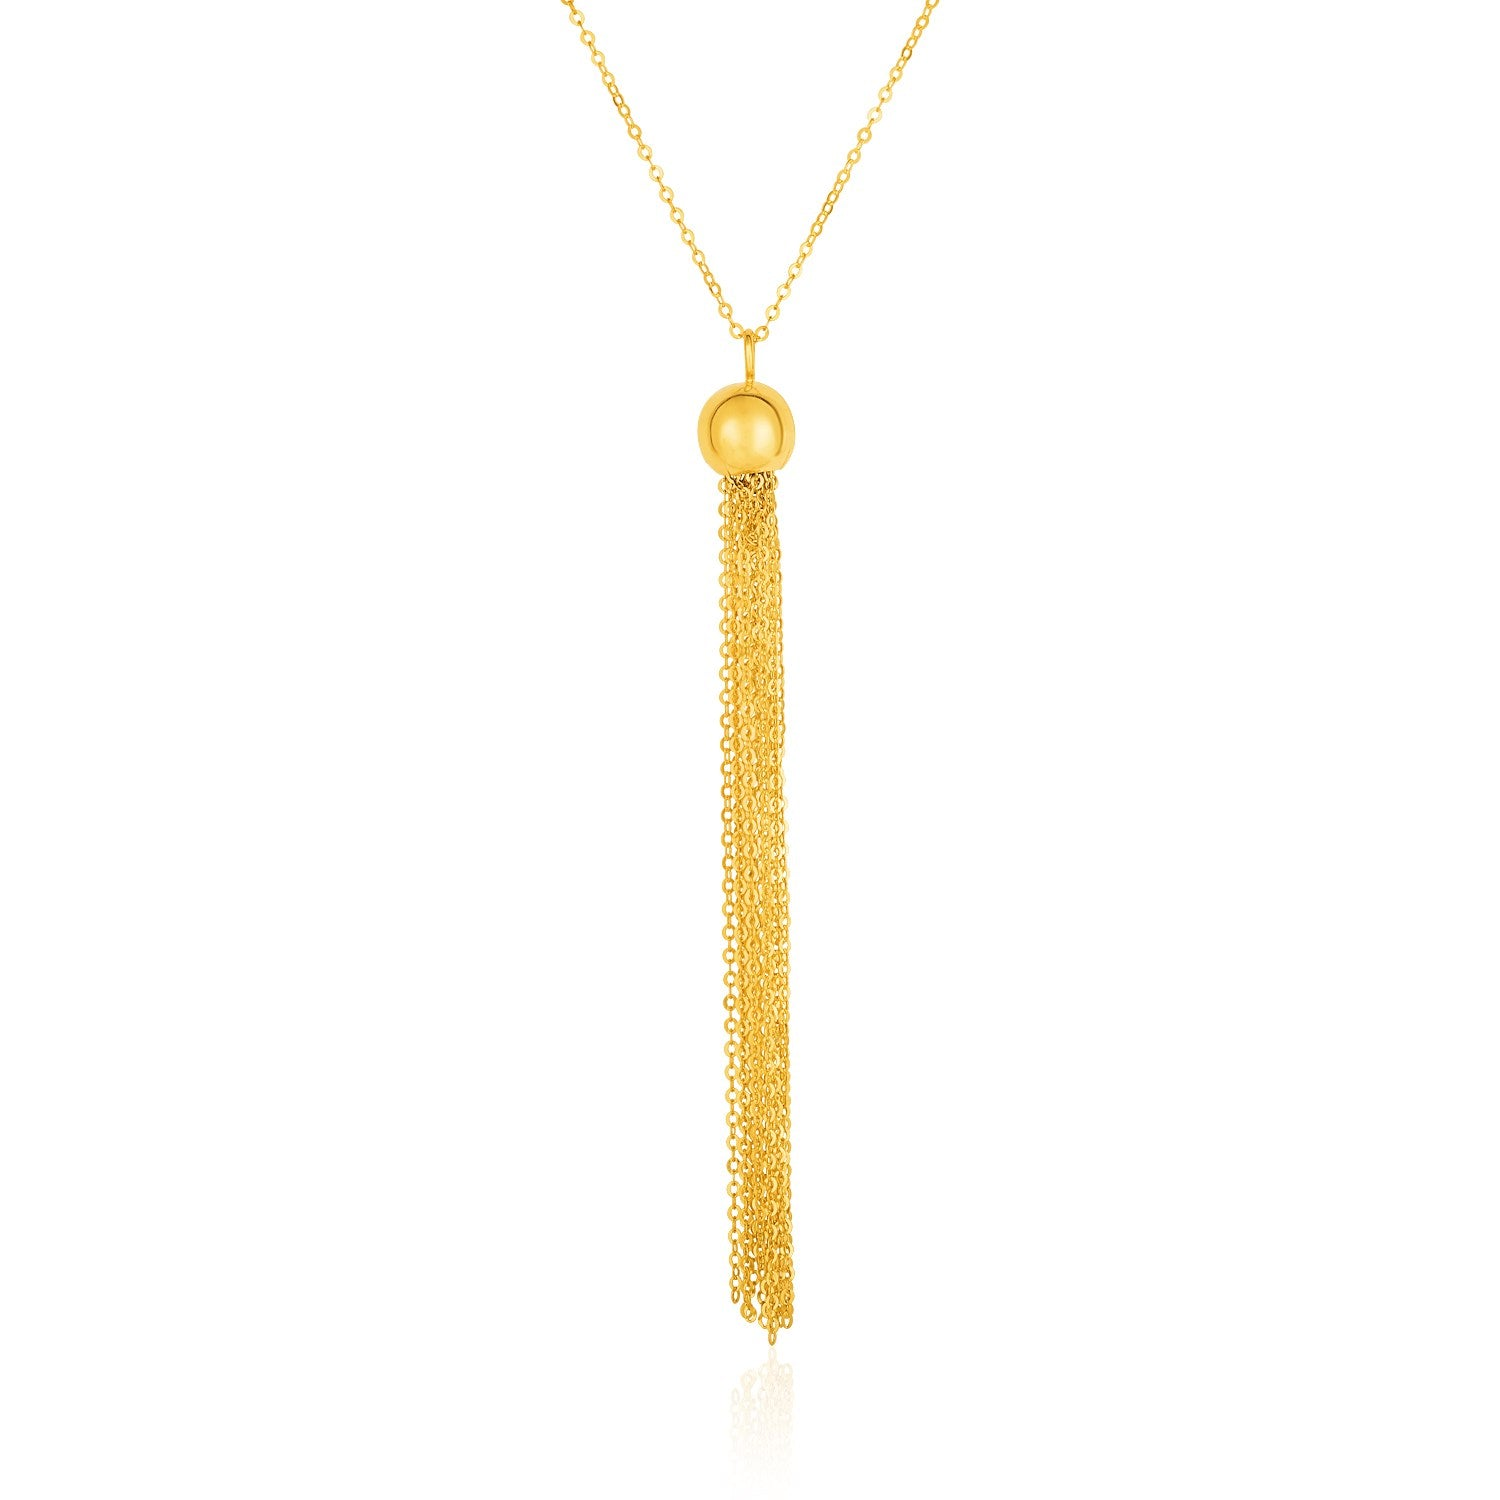 14K Yellow Gold Ball and Multi-Strand Tassel Necklace